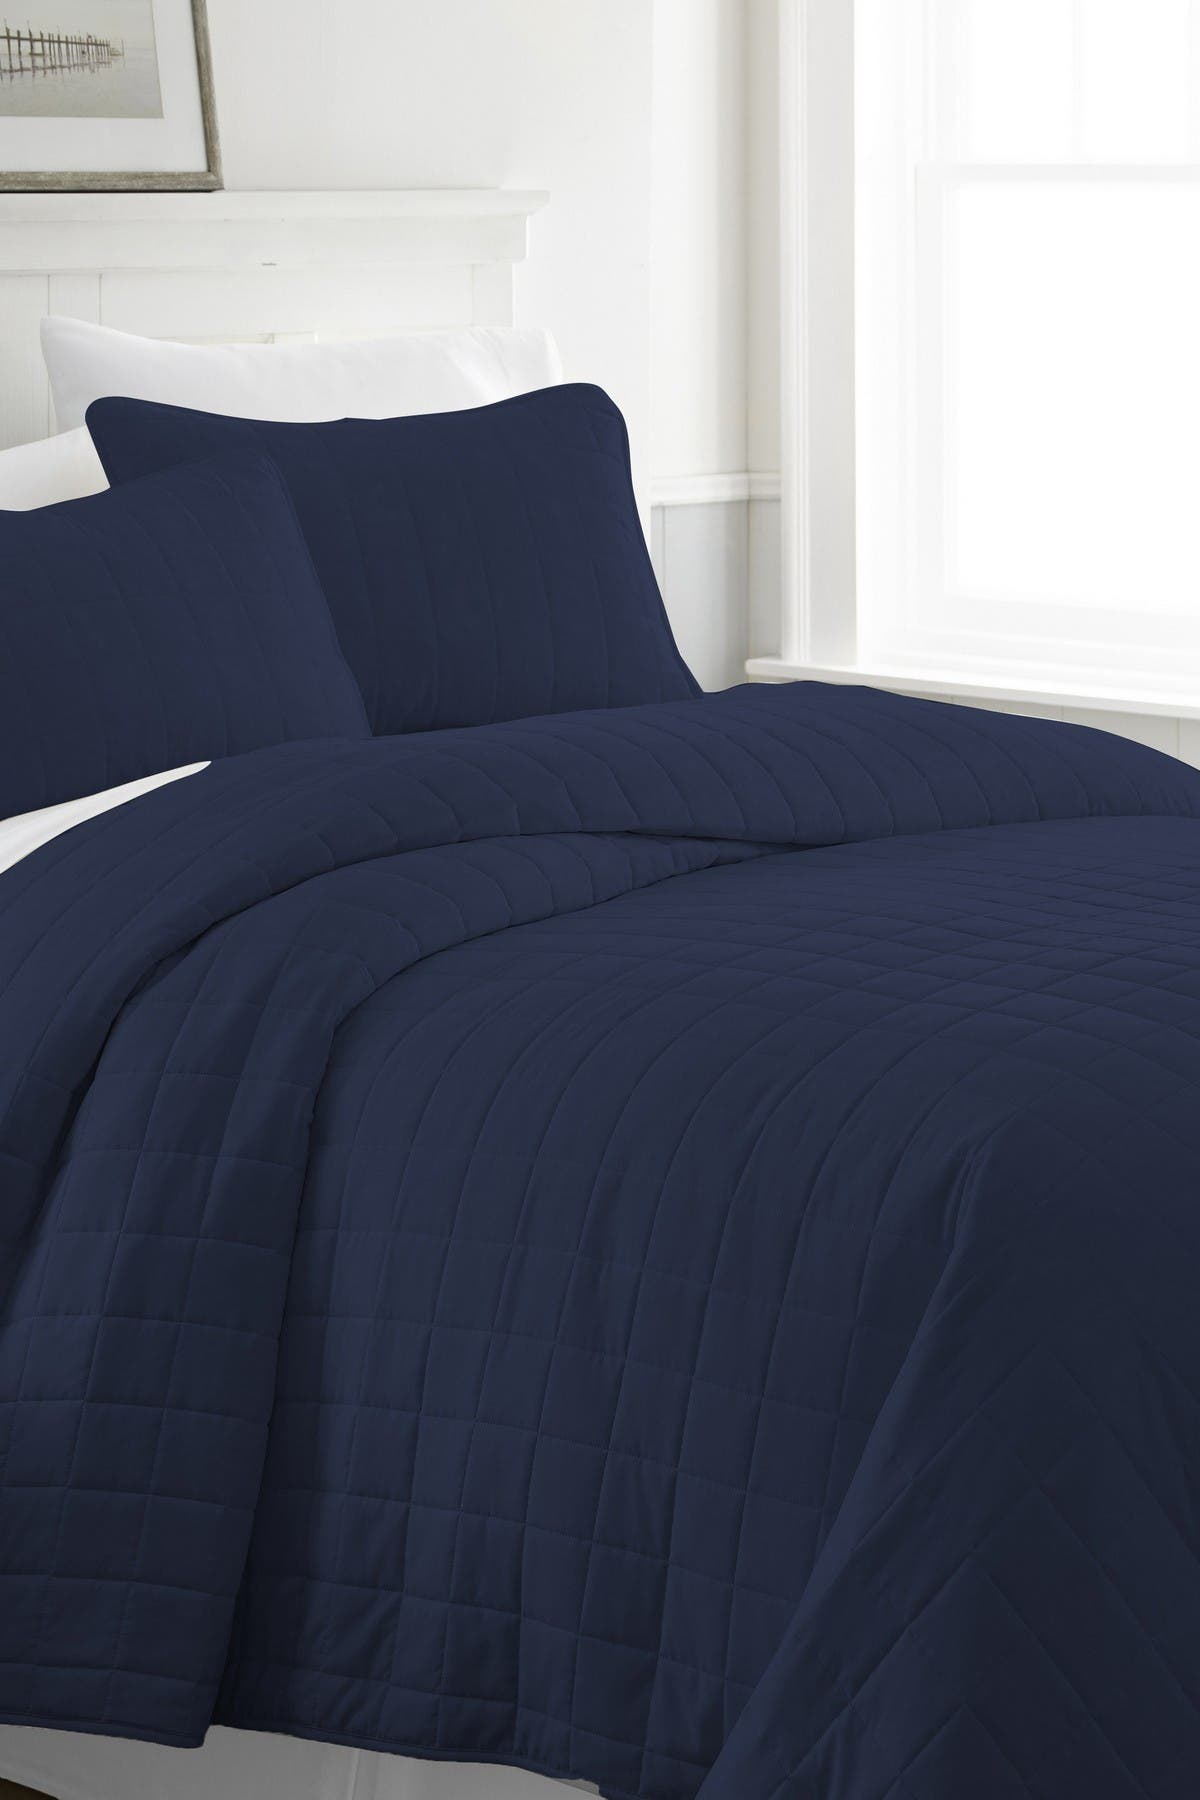 Image of IENJOY HOME Home Spun Premium Ultra Soft Square Pattern Quilted Full/Queen Coverlet Set - Navy